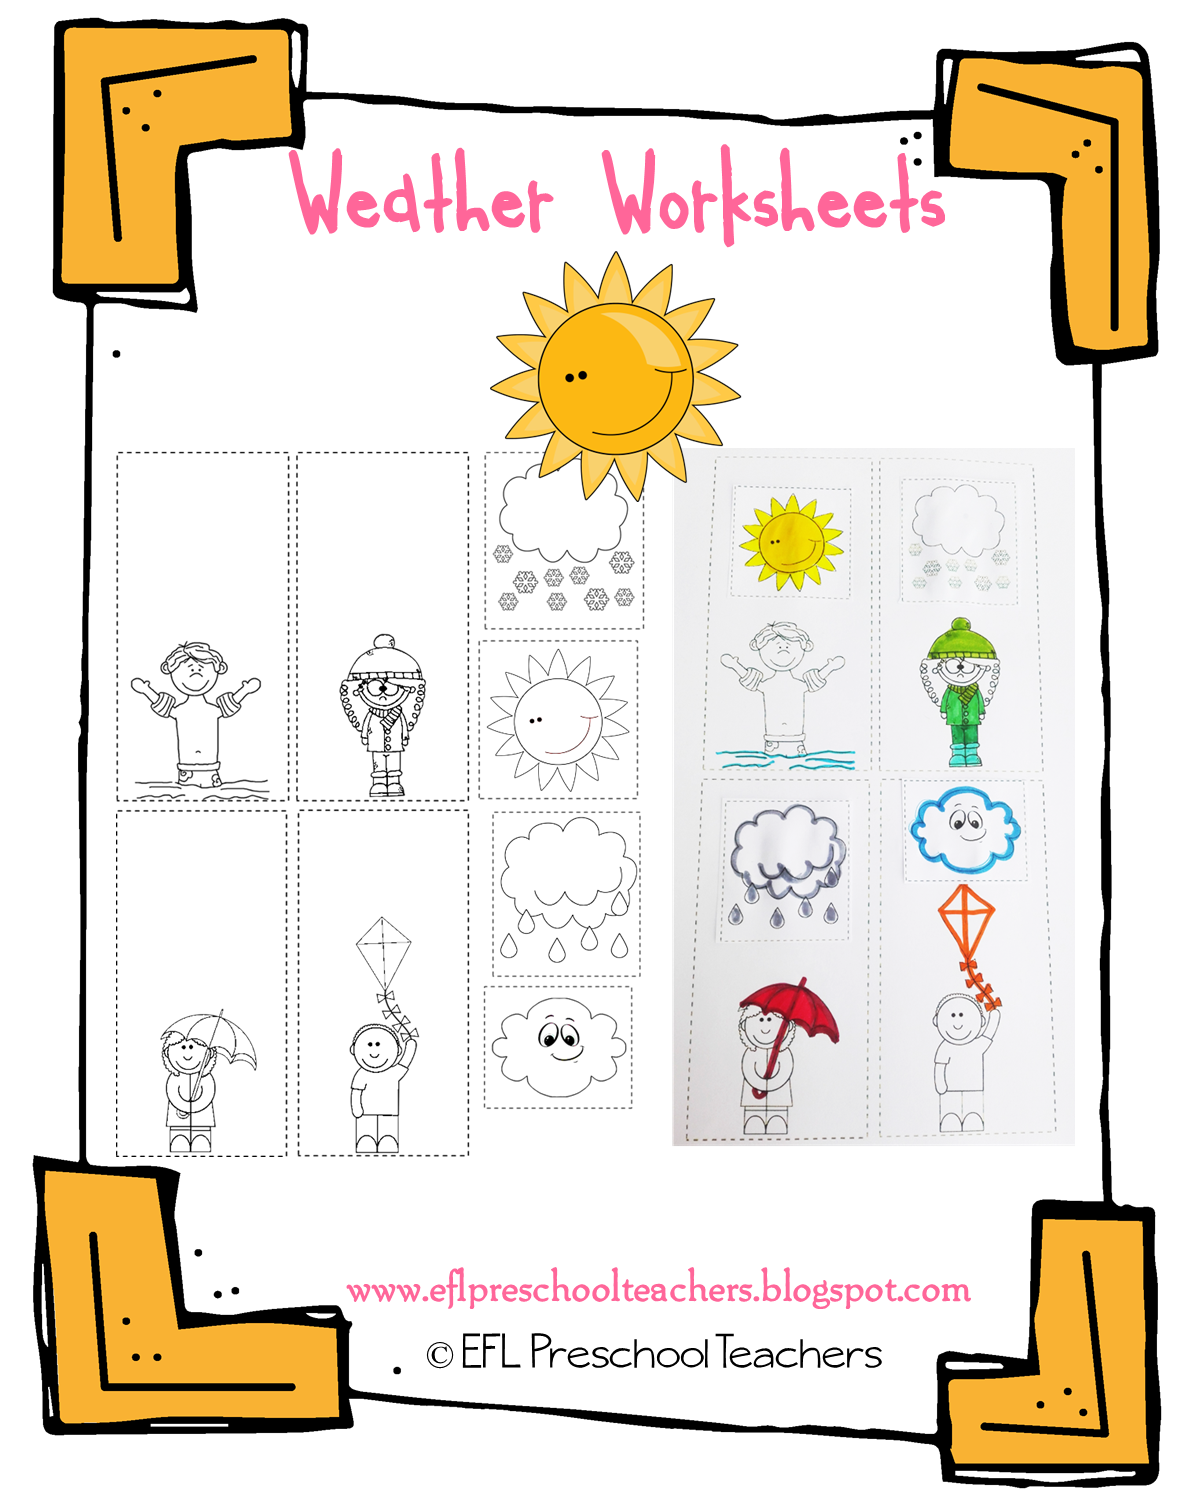 Esl Efl Preschool Teachers Weather Theme Resources For